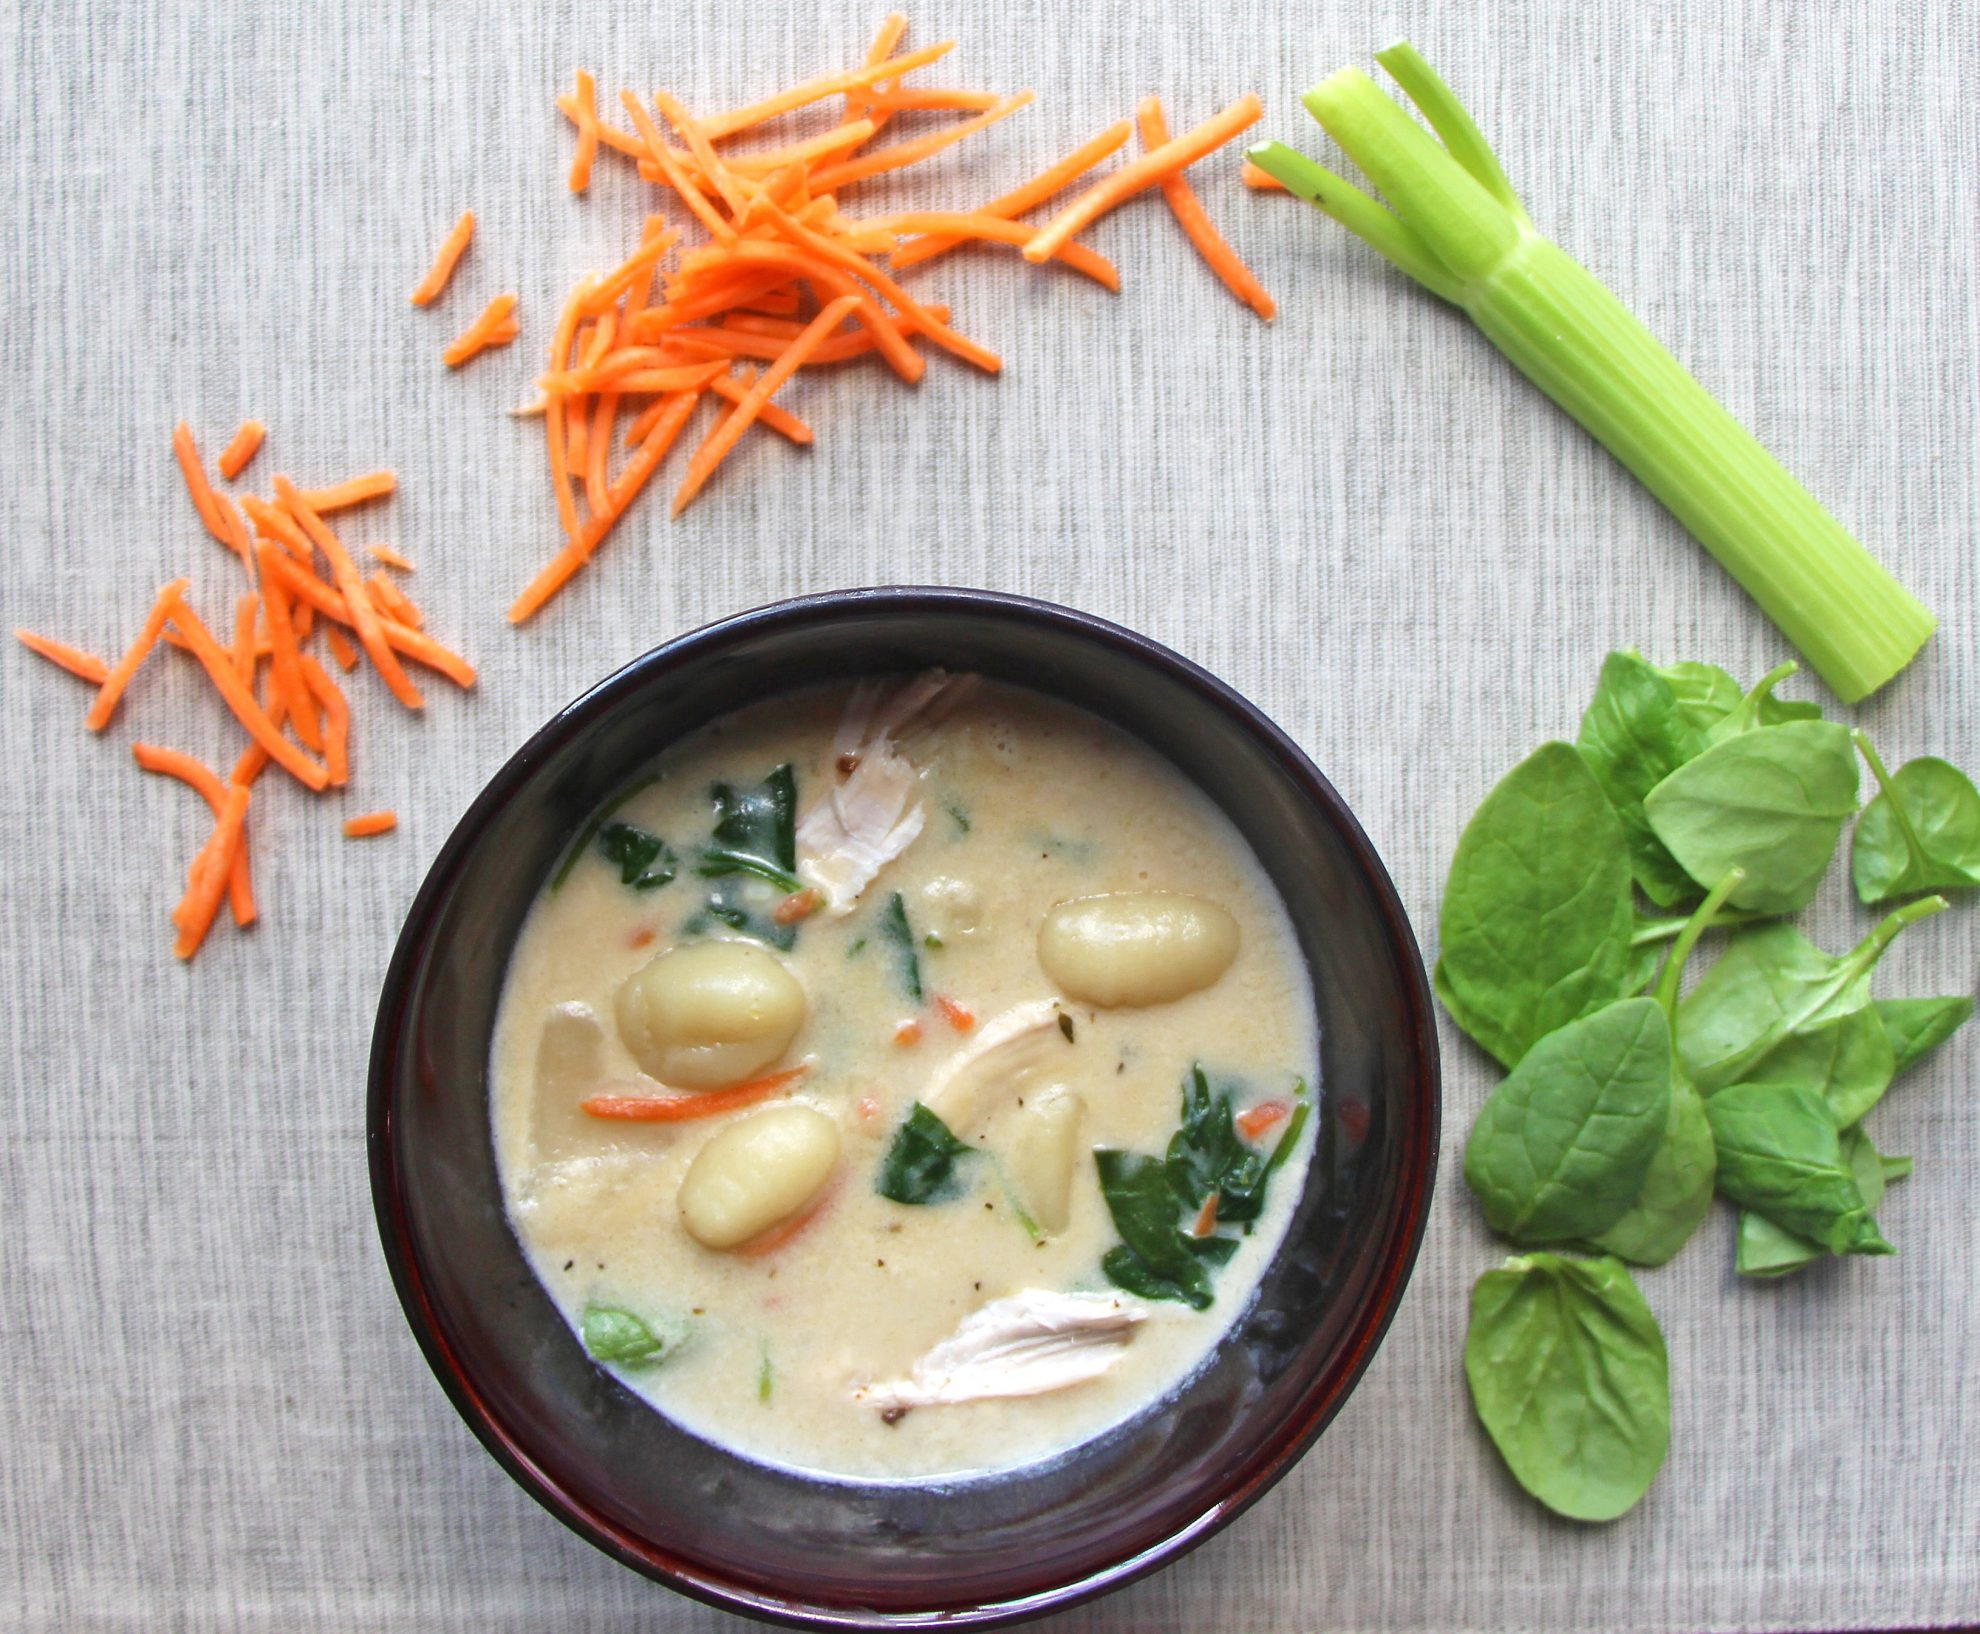 Bowl of dairy-free chicken and gnocchi soup surrounded by carrots, celery, and spinach. this is one of many dairy free chicken recipes on this site.